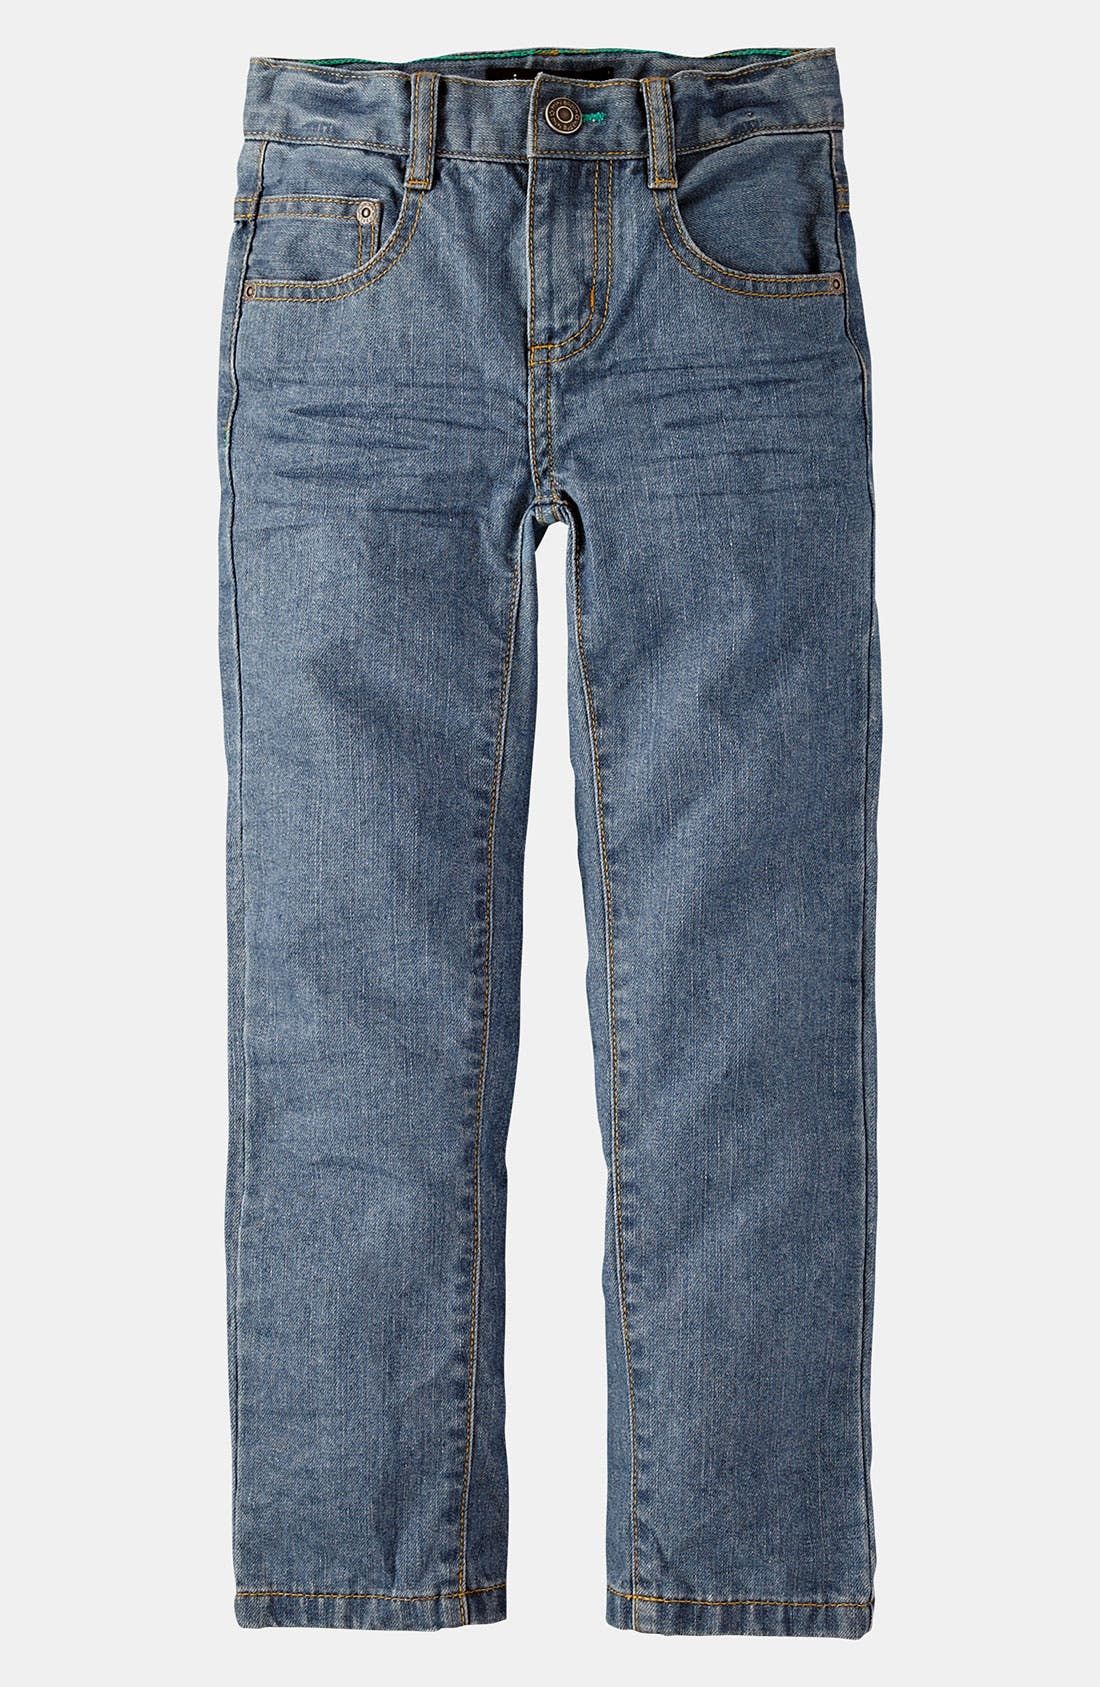 Alternate Image 1 Selected - Mini Boden Slim Fit Jeans (Little Boys & Big Boys)